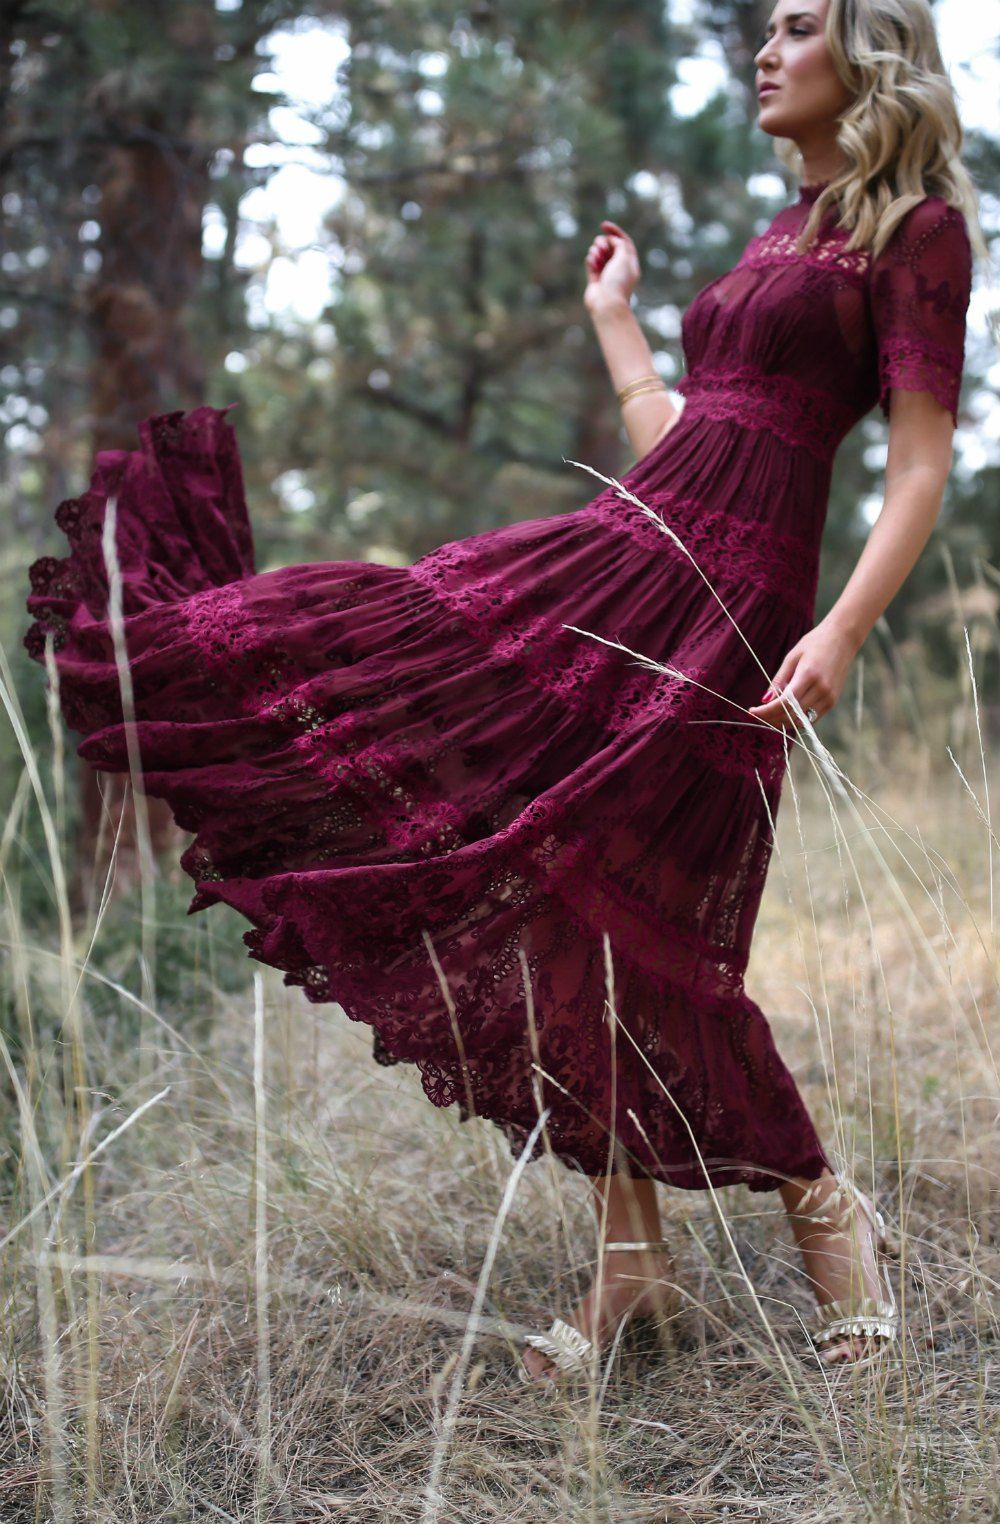 Fall Wedding Style Rehearsal Dinner In Montana Burgundy Lace Midi Dress Gold Ruffle Sandals Pea Wedding Dress Suit Burgundy Midi Dress Fall Wedding Suits [ 1524 x 1000 Pixel ]